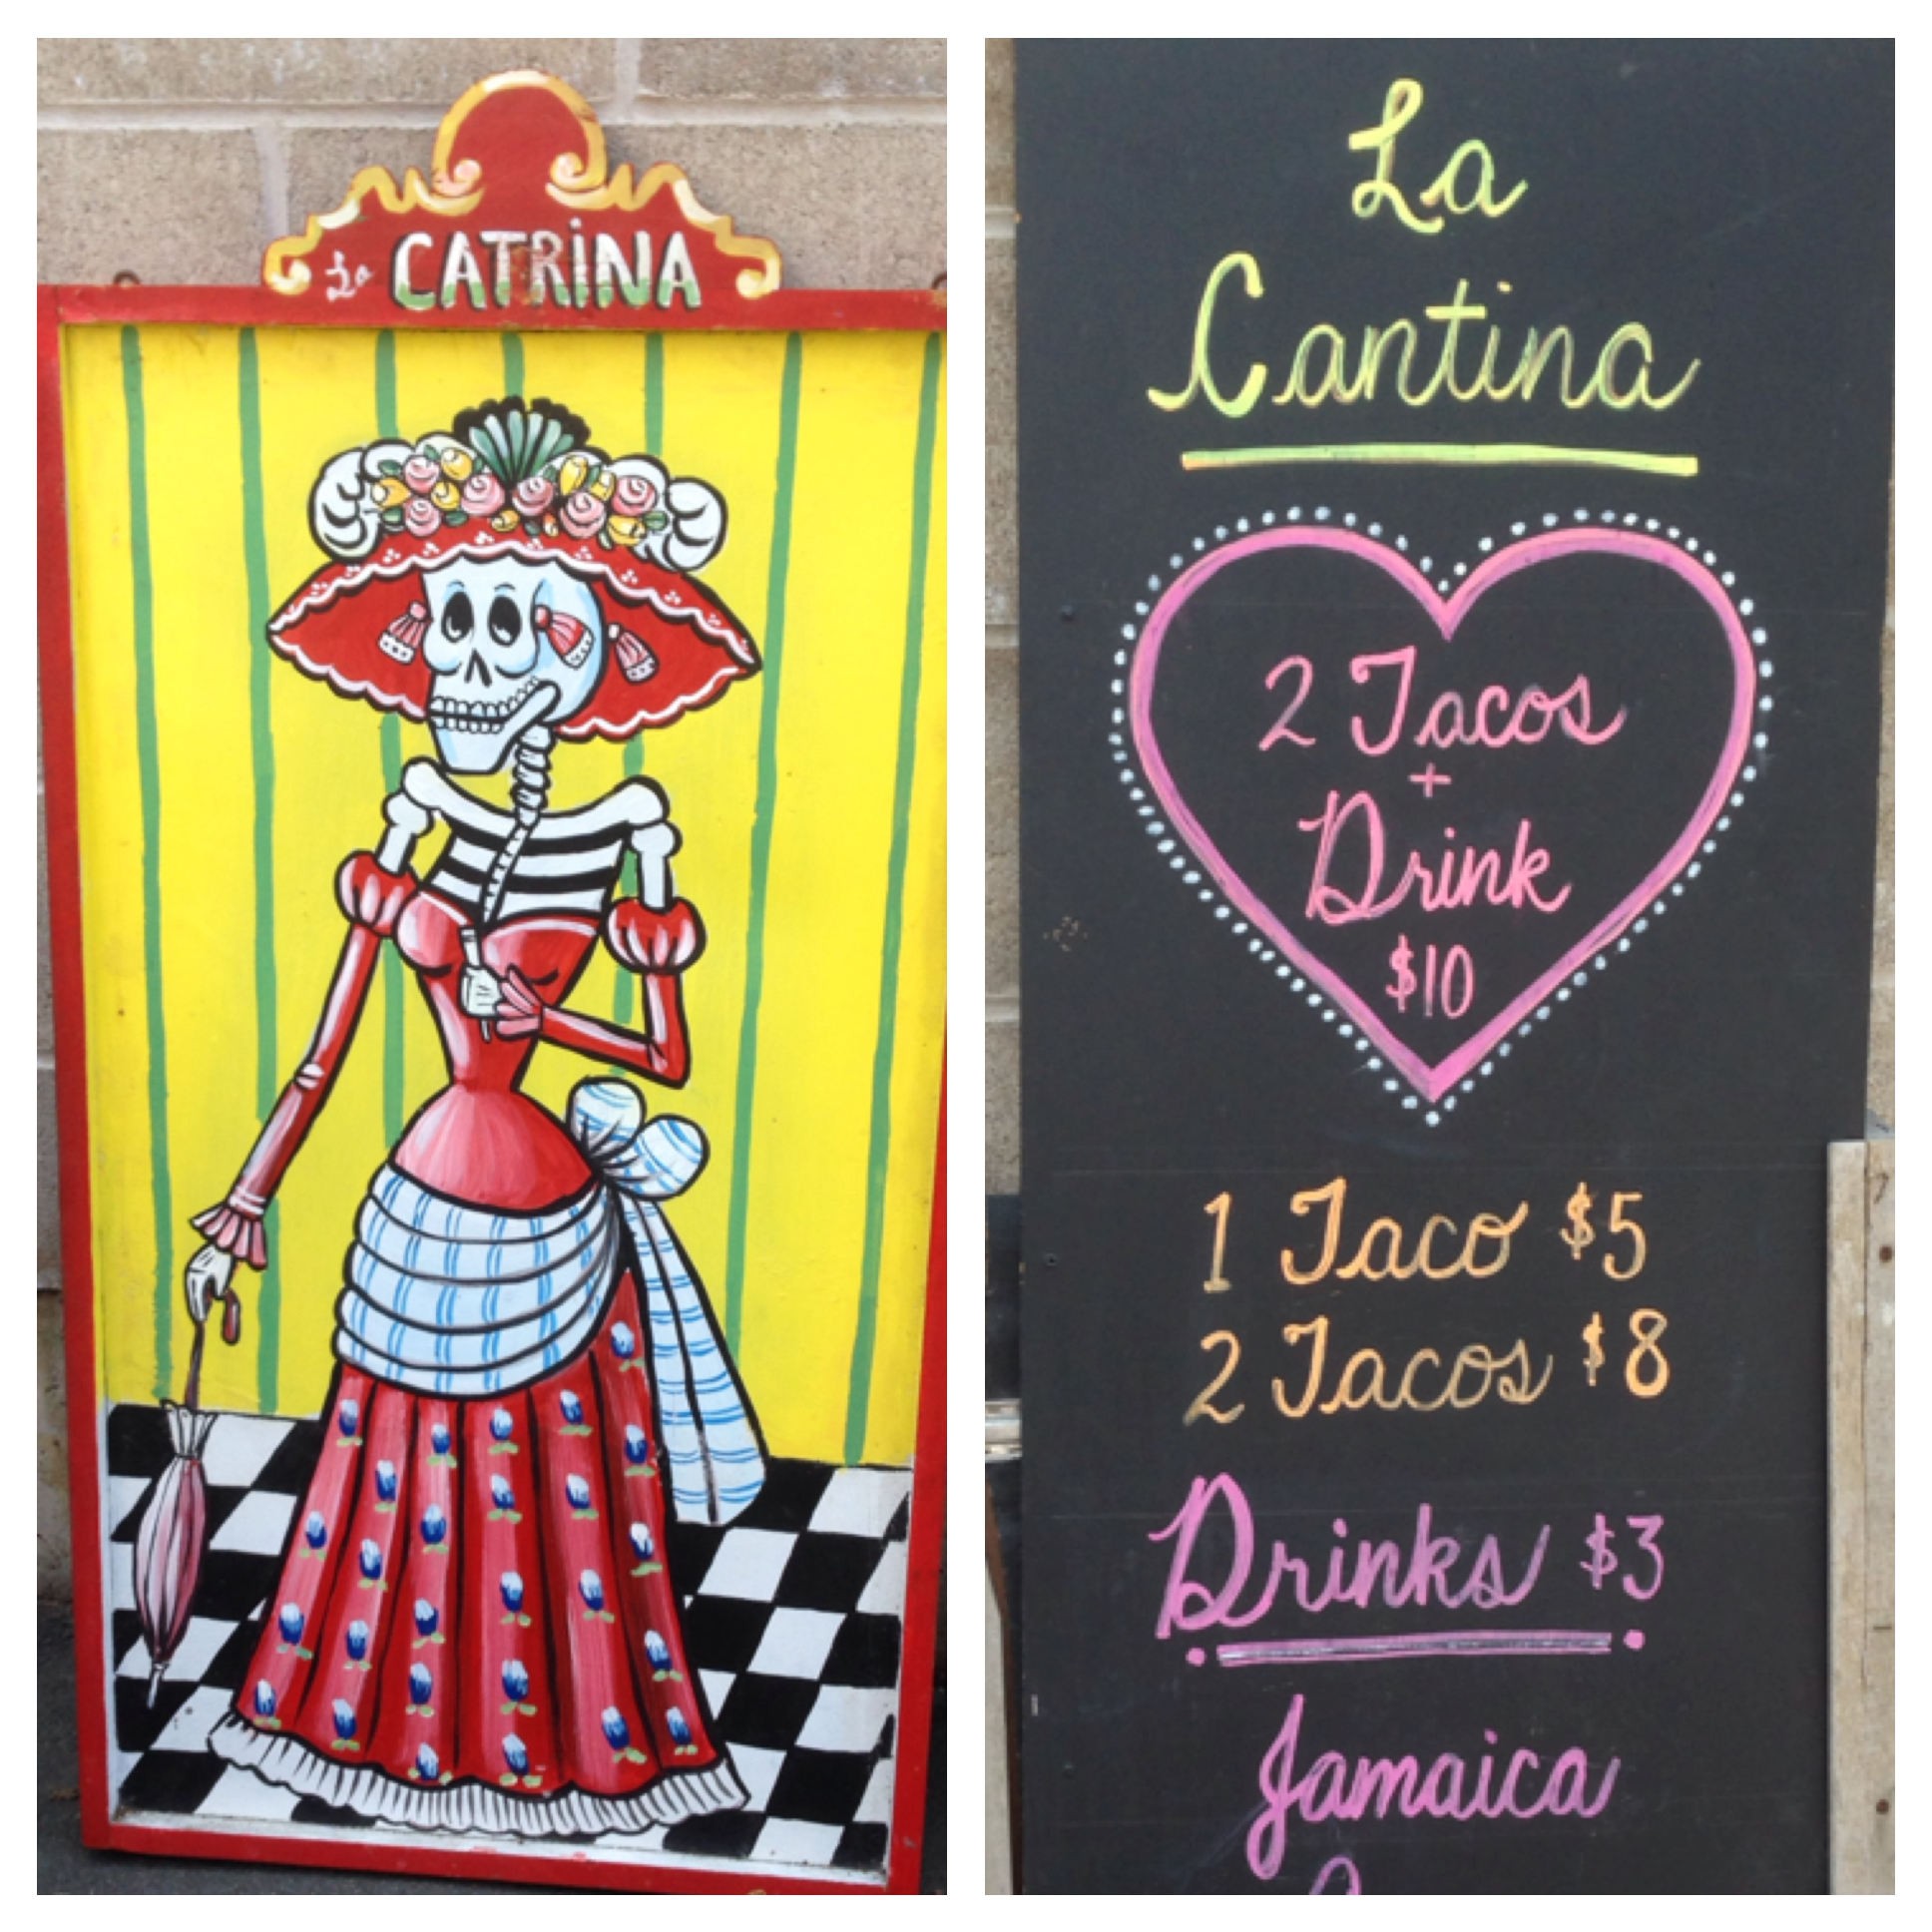 La Catrina greets you over at La Cantina.